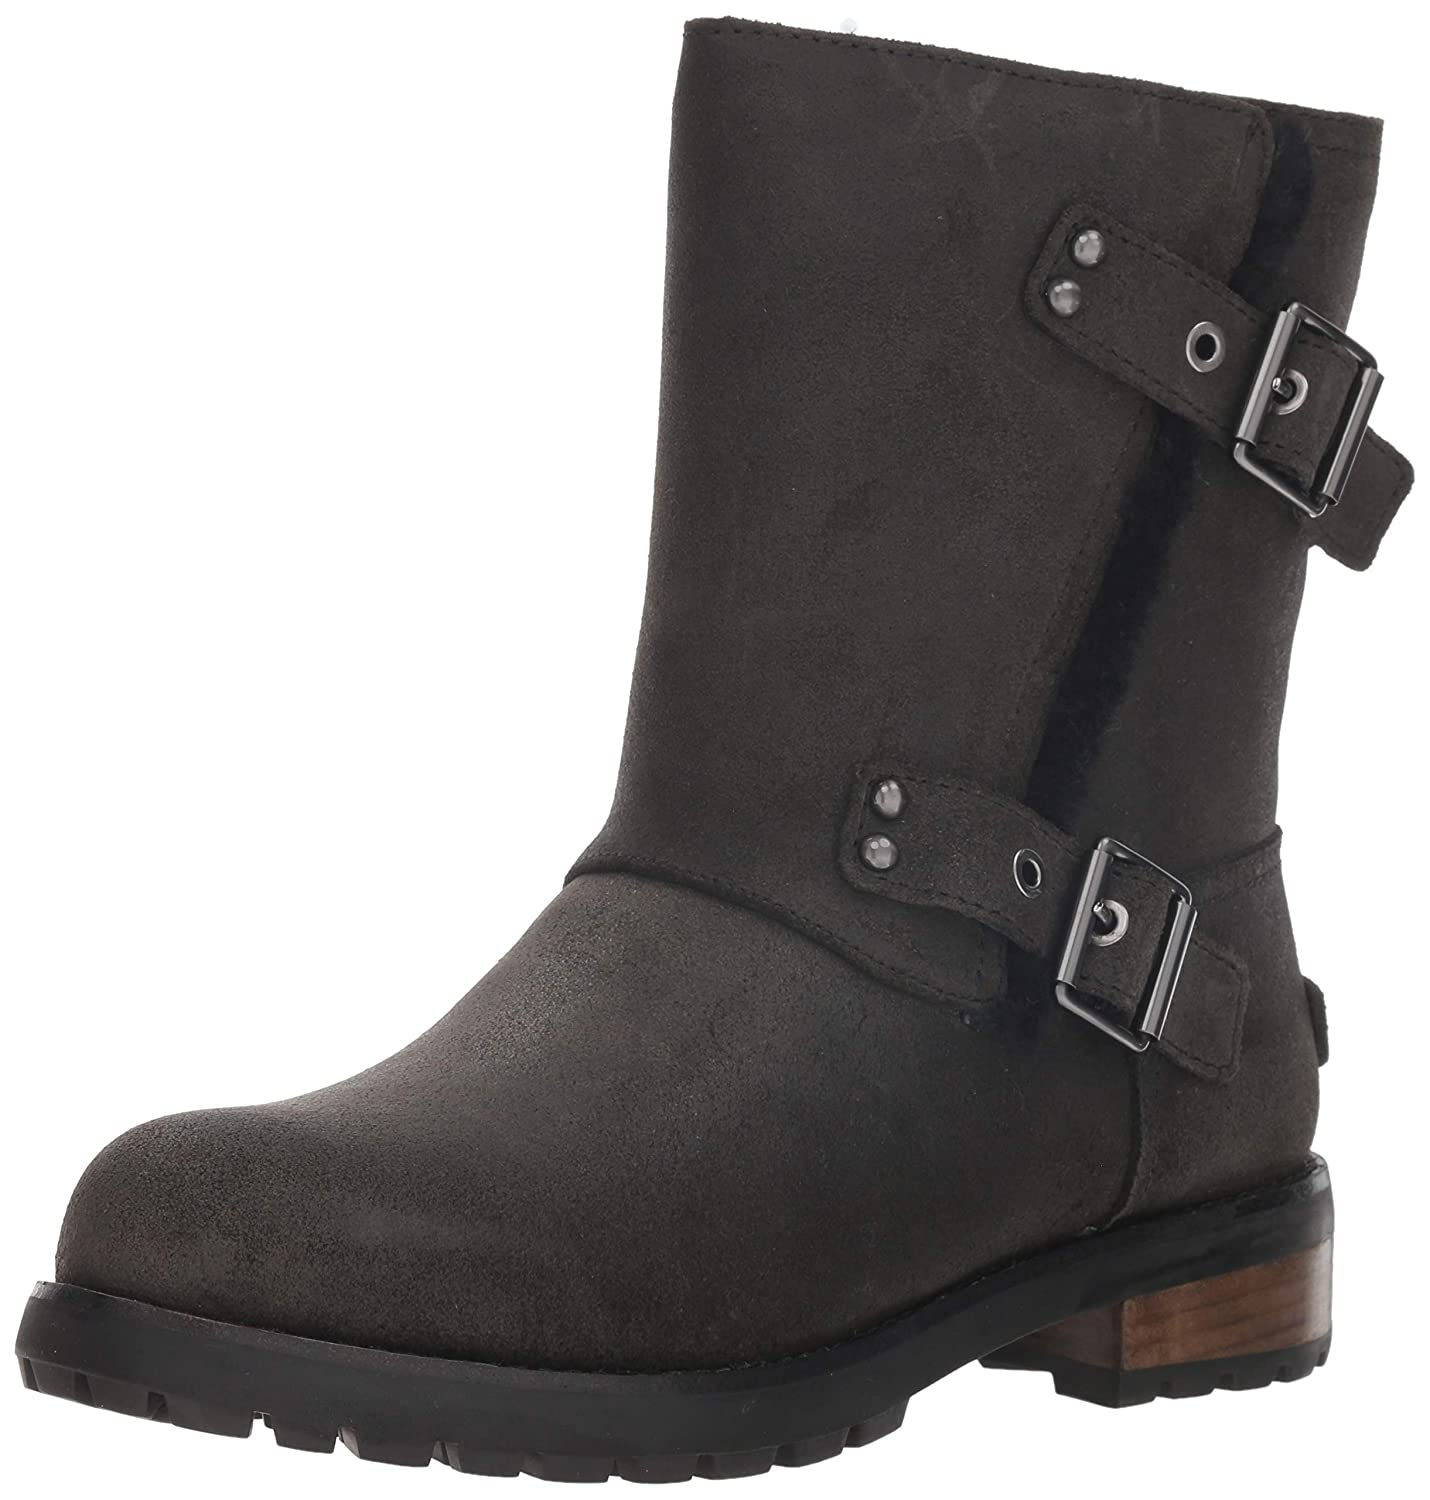 3fec4a58f49 UGG Women's W Niels II Fashion Boot